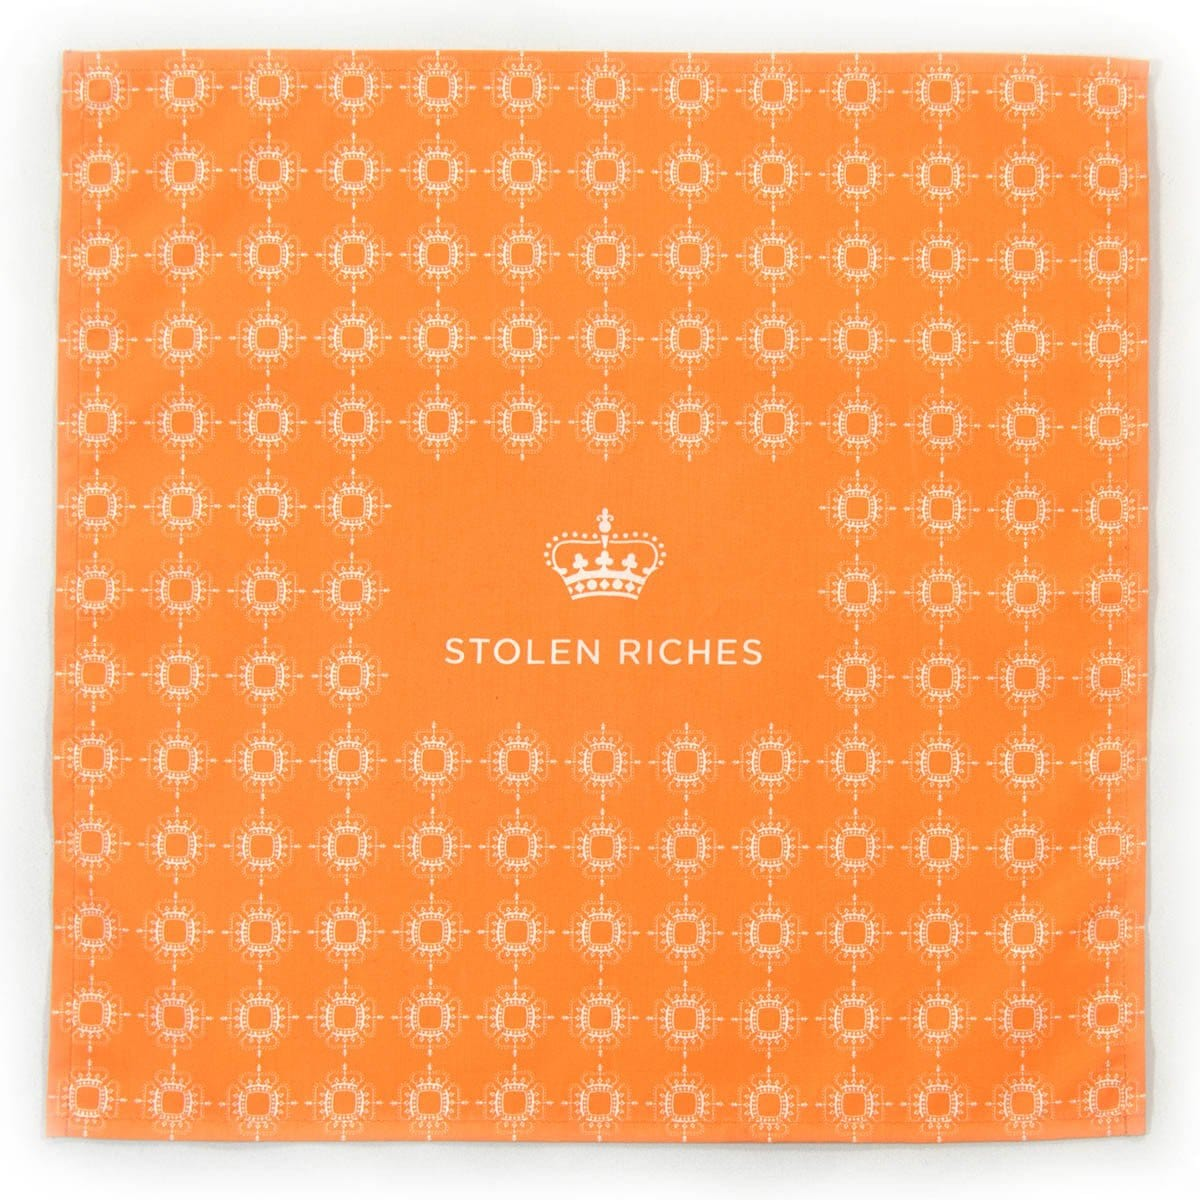 "Tiqui Orange - Crown Pattern Pocket Square (13""x13"") - Stolen Riches"